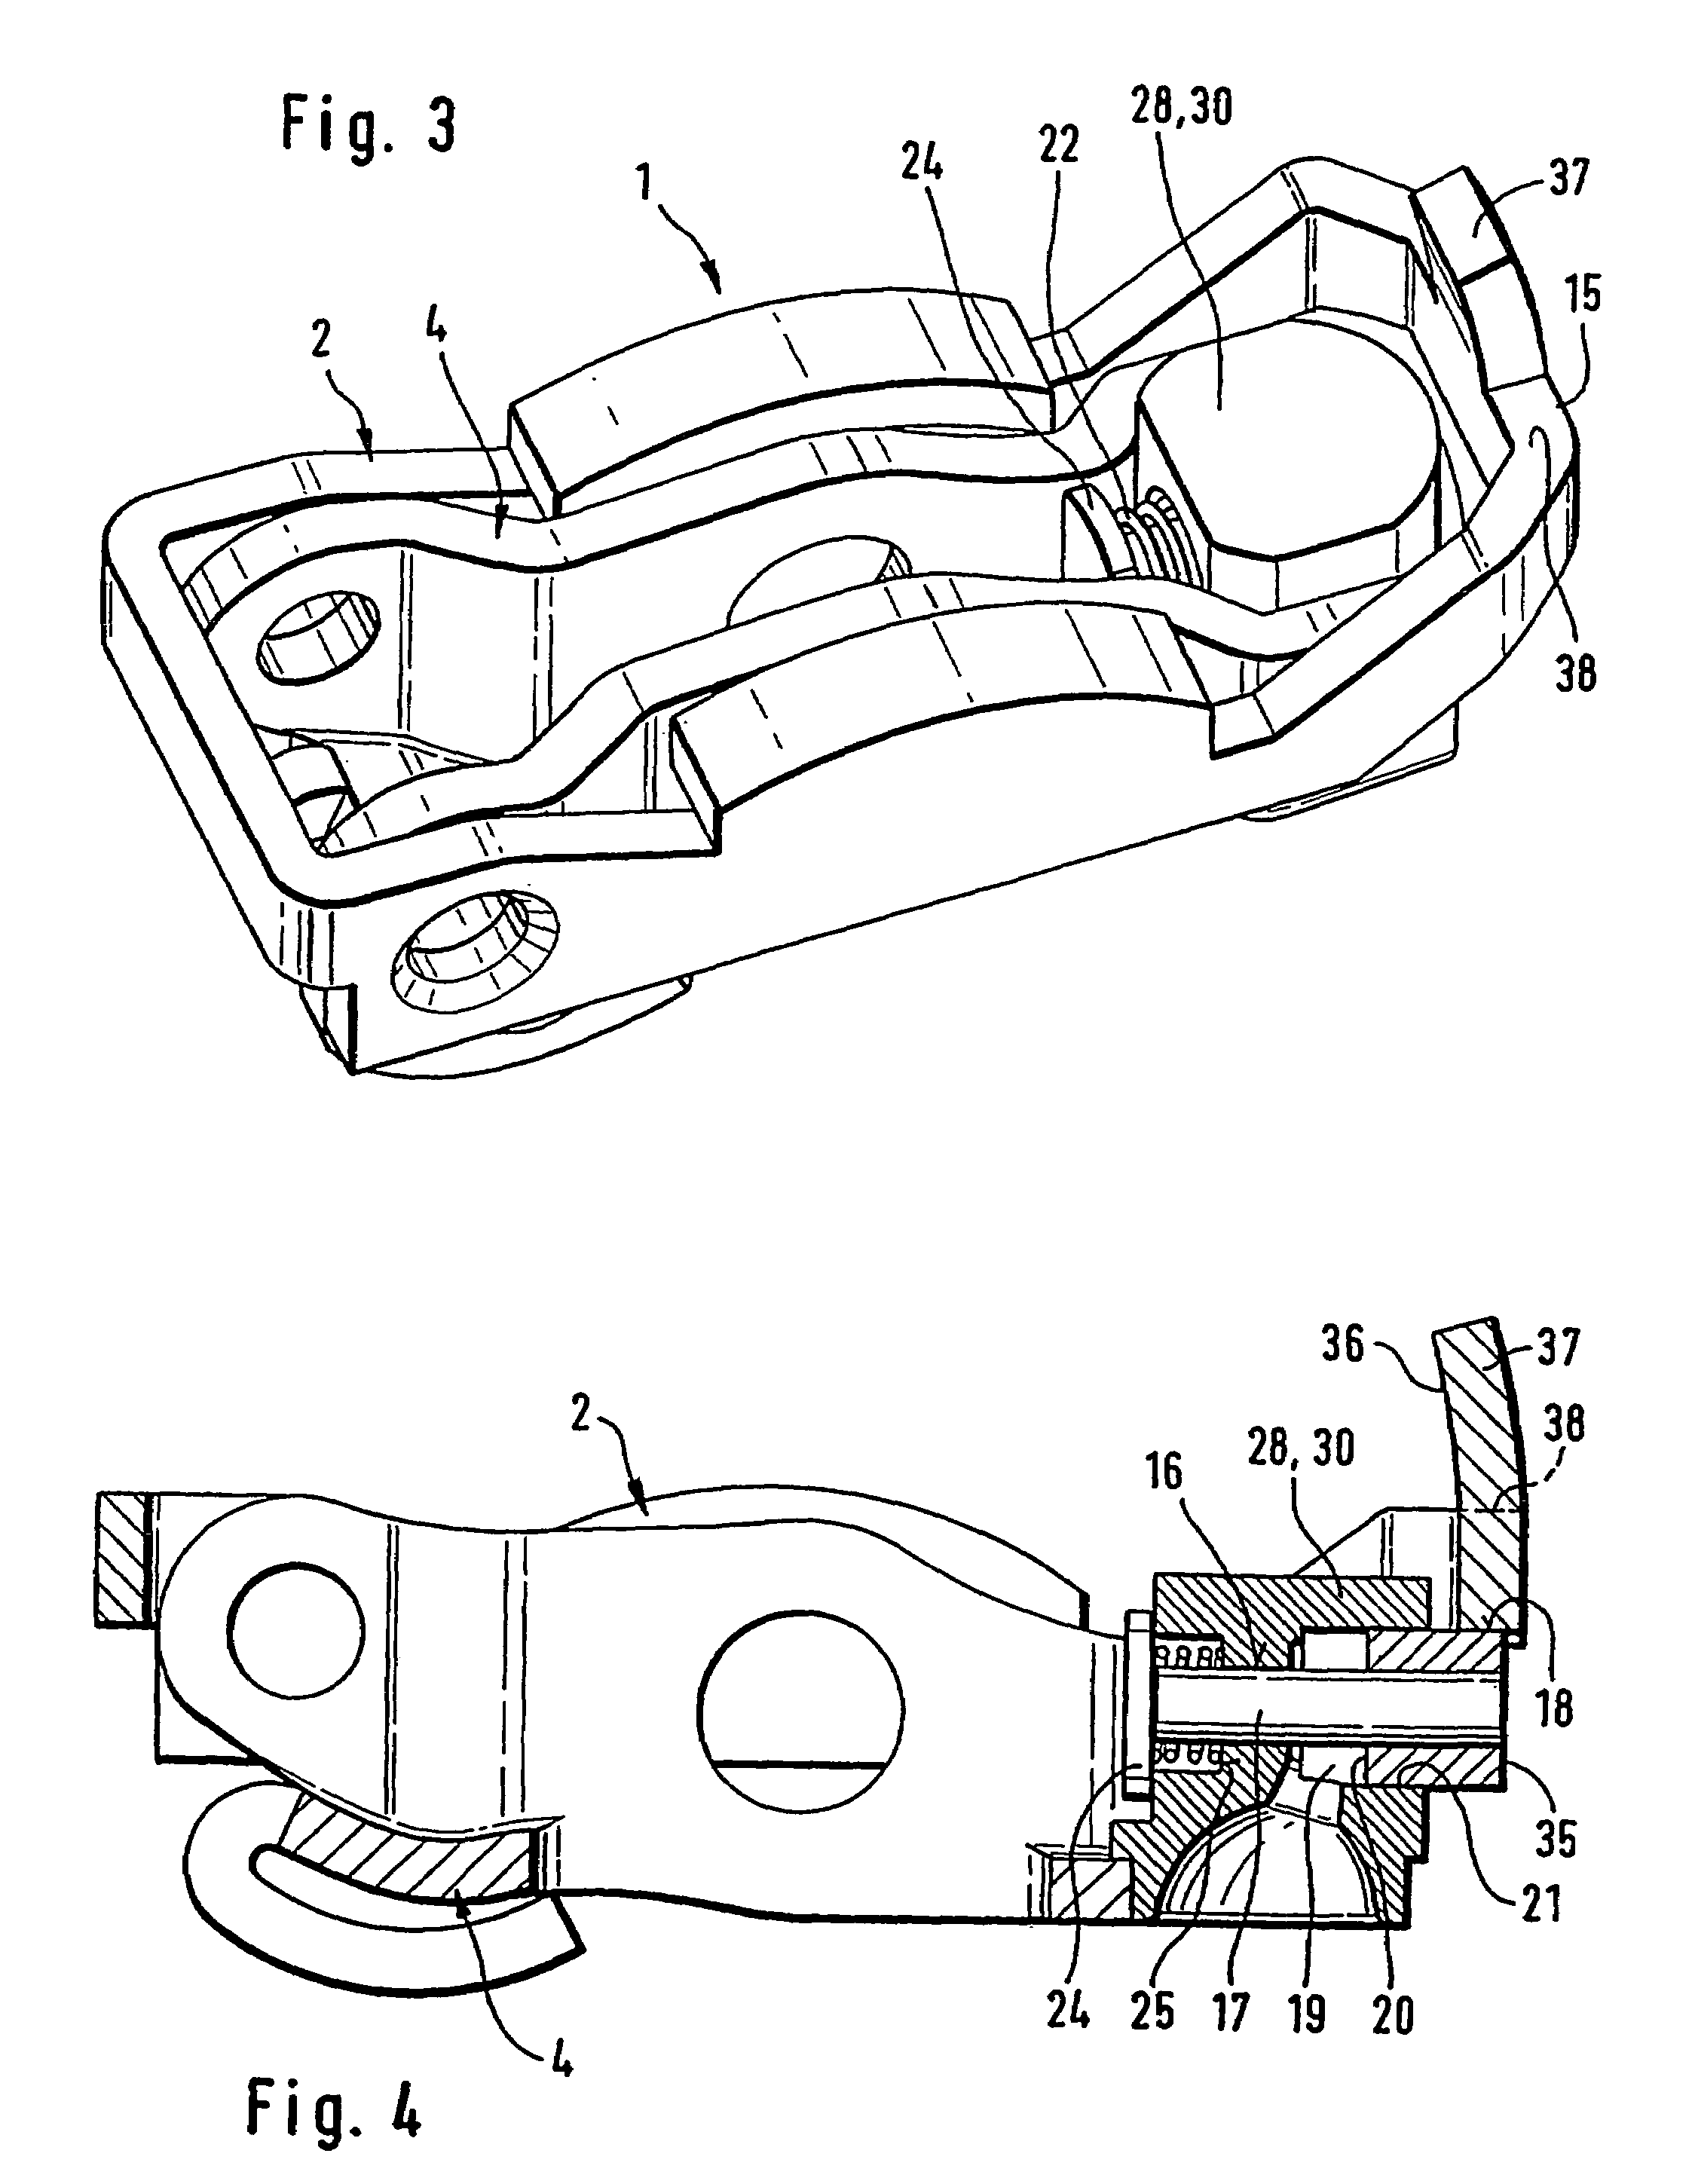 Combustion Engine Lever : Patent us switchable finger lever of a valve